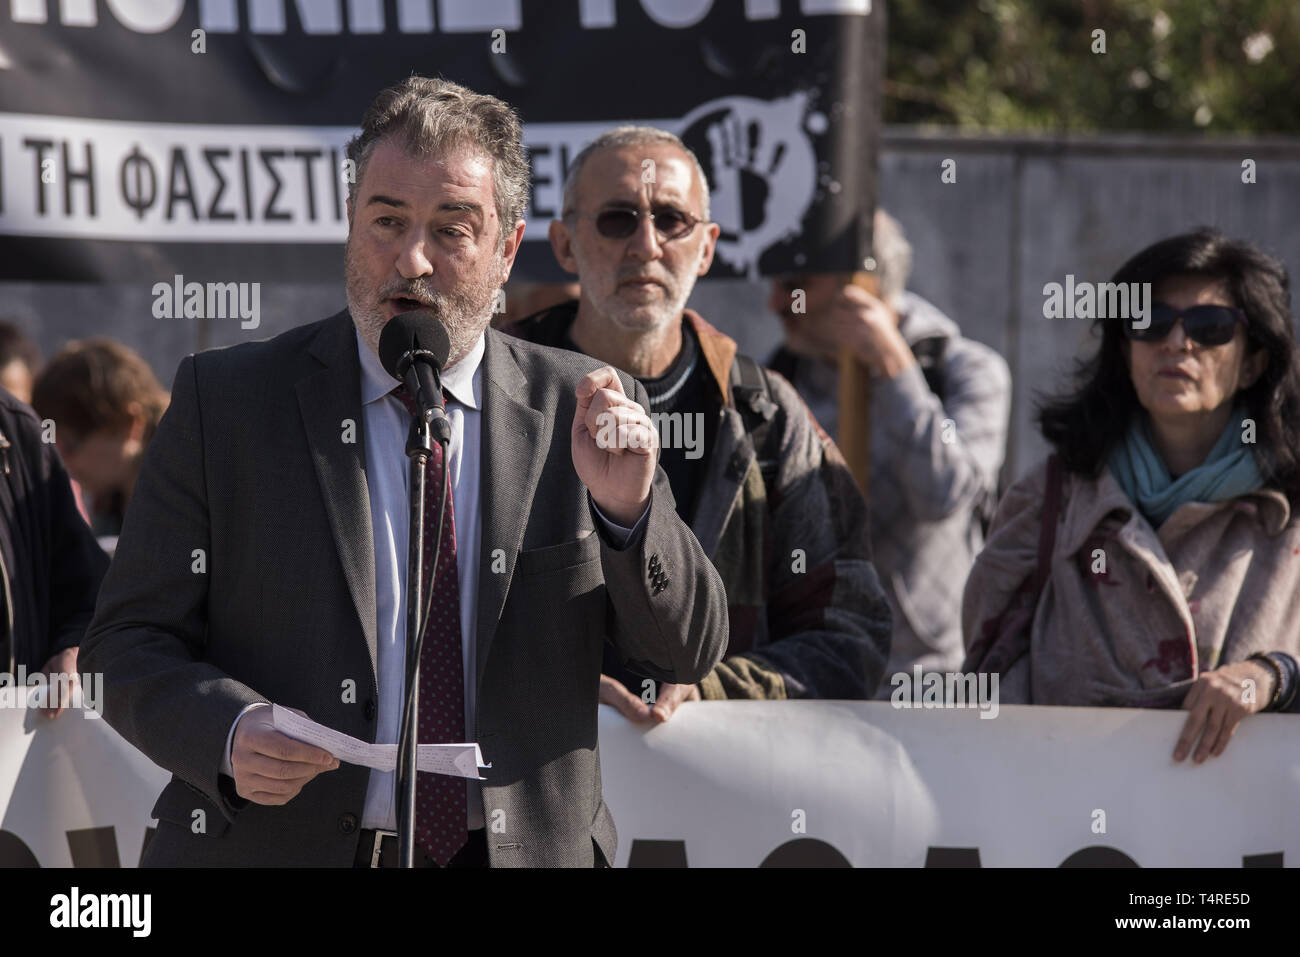 Athens, Greece. 18th Apr, 2019. KOSTAS PAPADAKIS, one of the case lawyers addresses protesters as they gathered outside the court to demand Golden Dawn's conviction, marking four years since the trial of the Greek neo-nazi party begun. The trial of Golden Dawn with almost 70 defendants, accusations such as criminal organization, murder, possession of weapons and racist violence, begun in April 2015 and is still ongoing. Credit: Nikolas Georgiou/ZUMA Wire/Alamy Live News Stock Photo